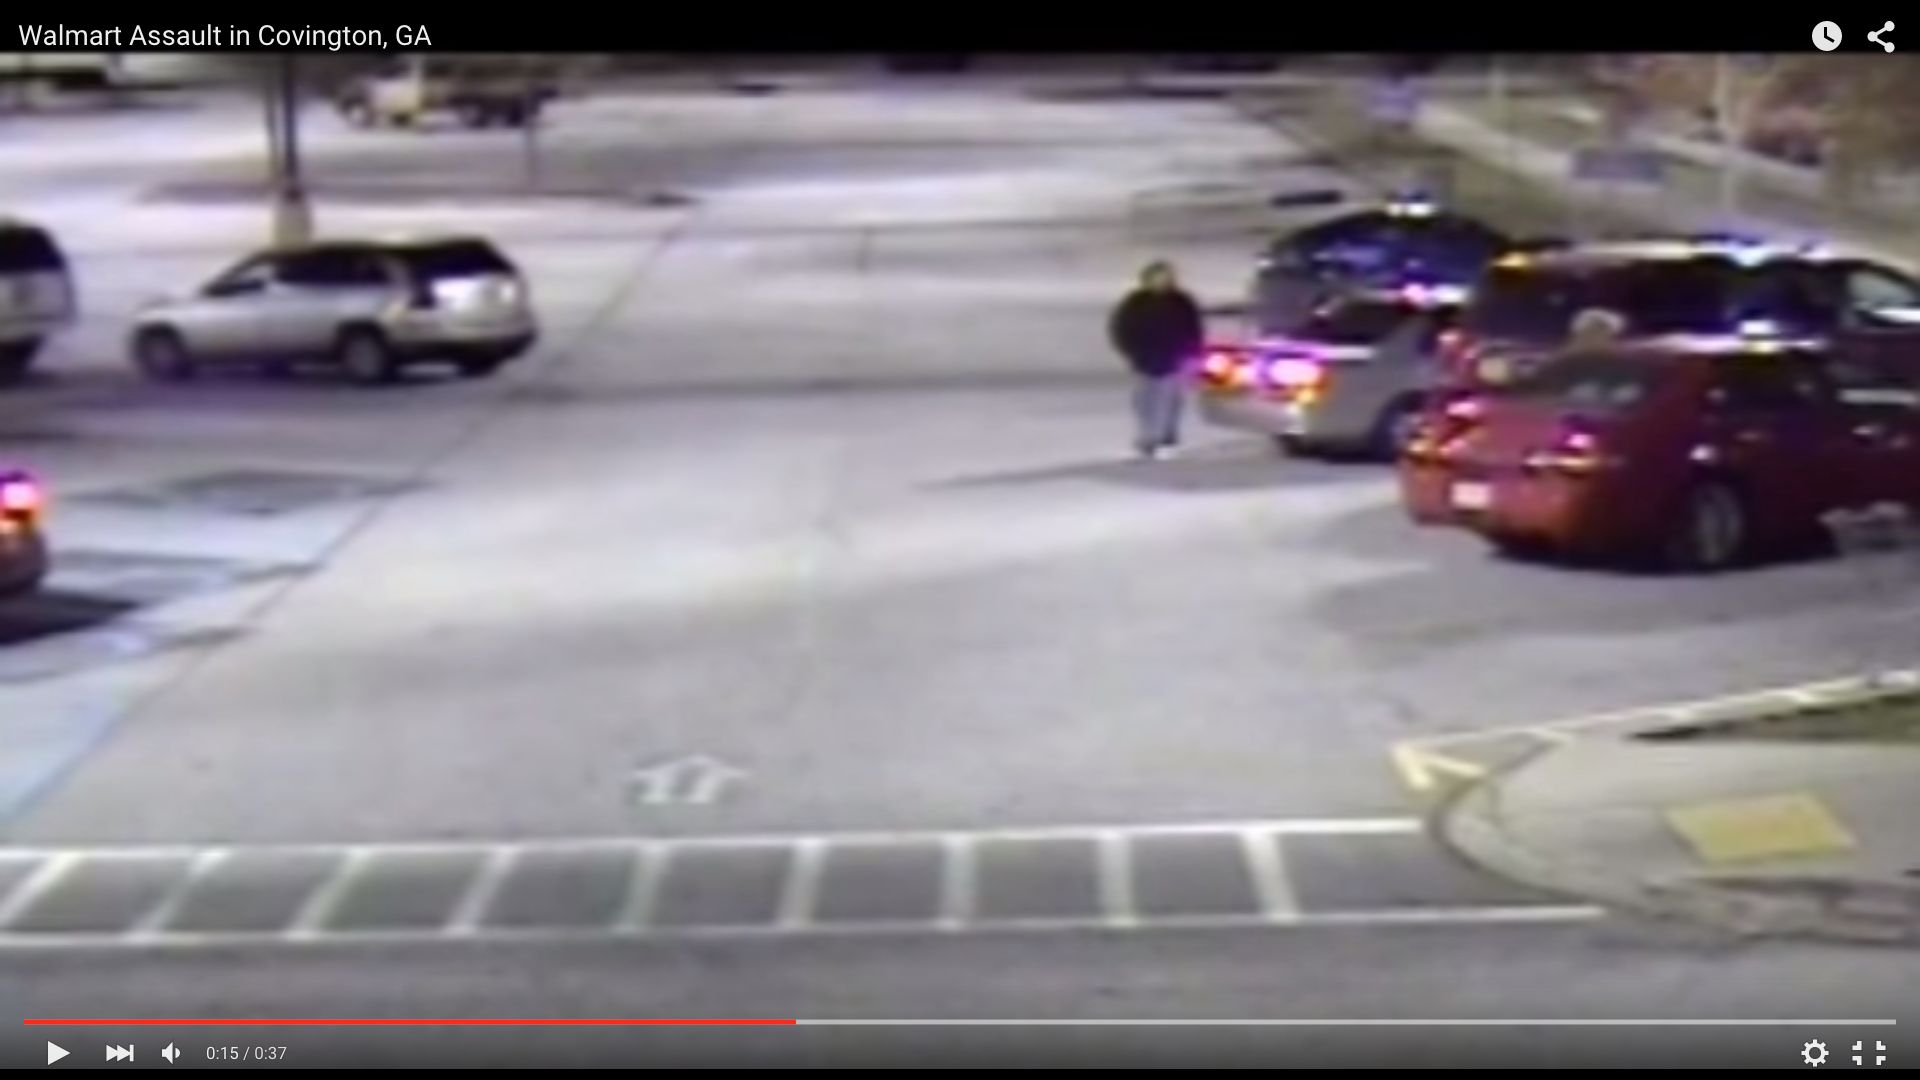 Police in Georgia are looking for this man who they say killed a woman by repeatedly running her over with his car after stealing her purse.